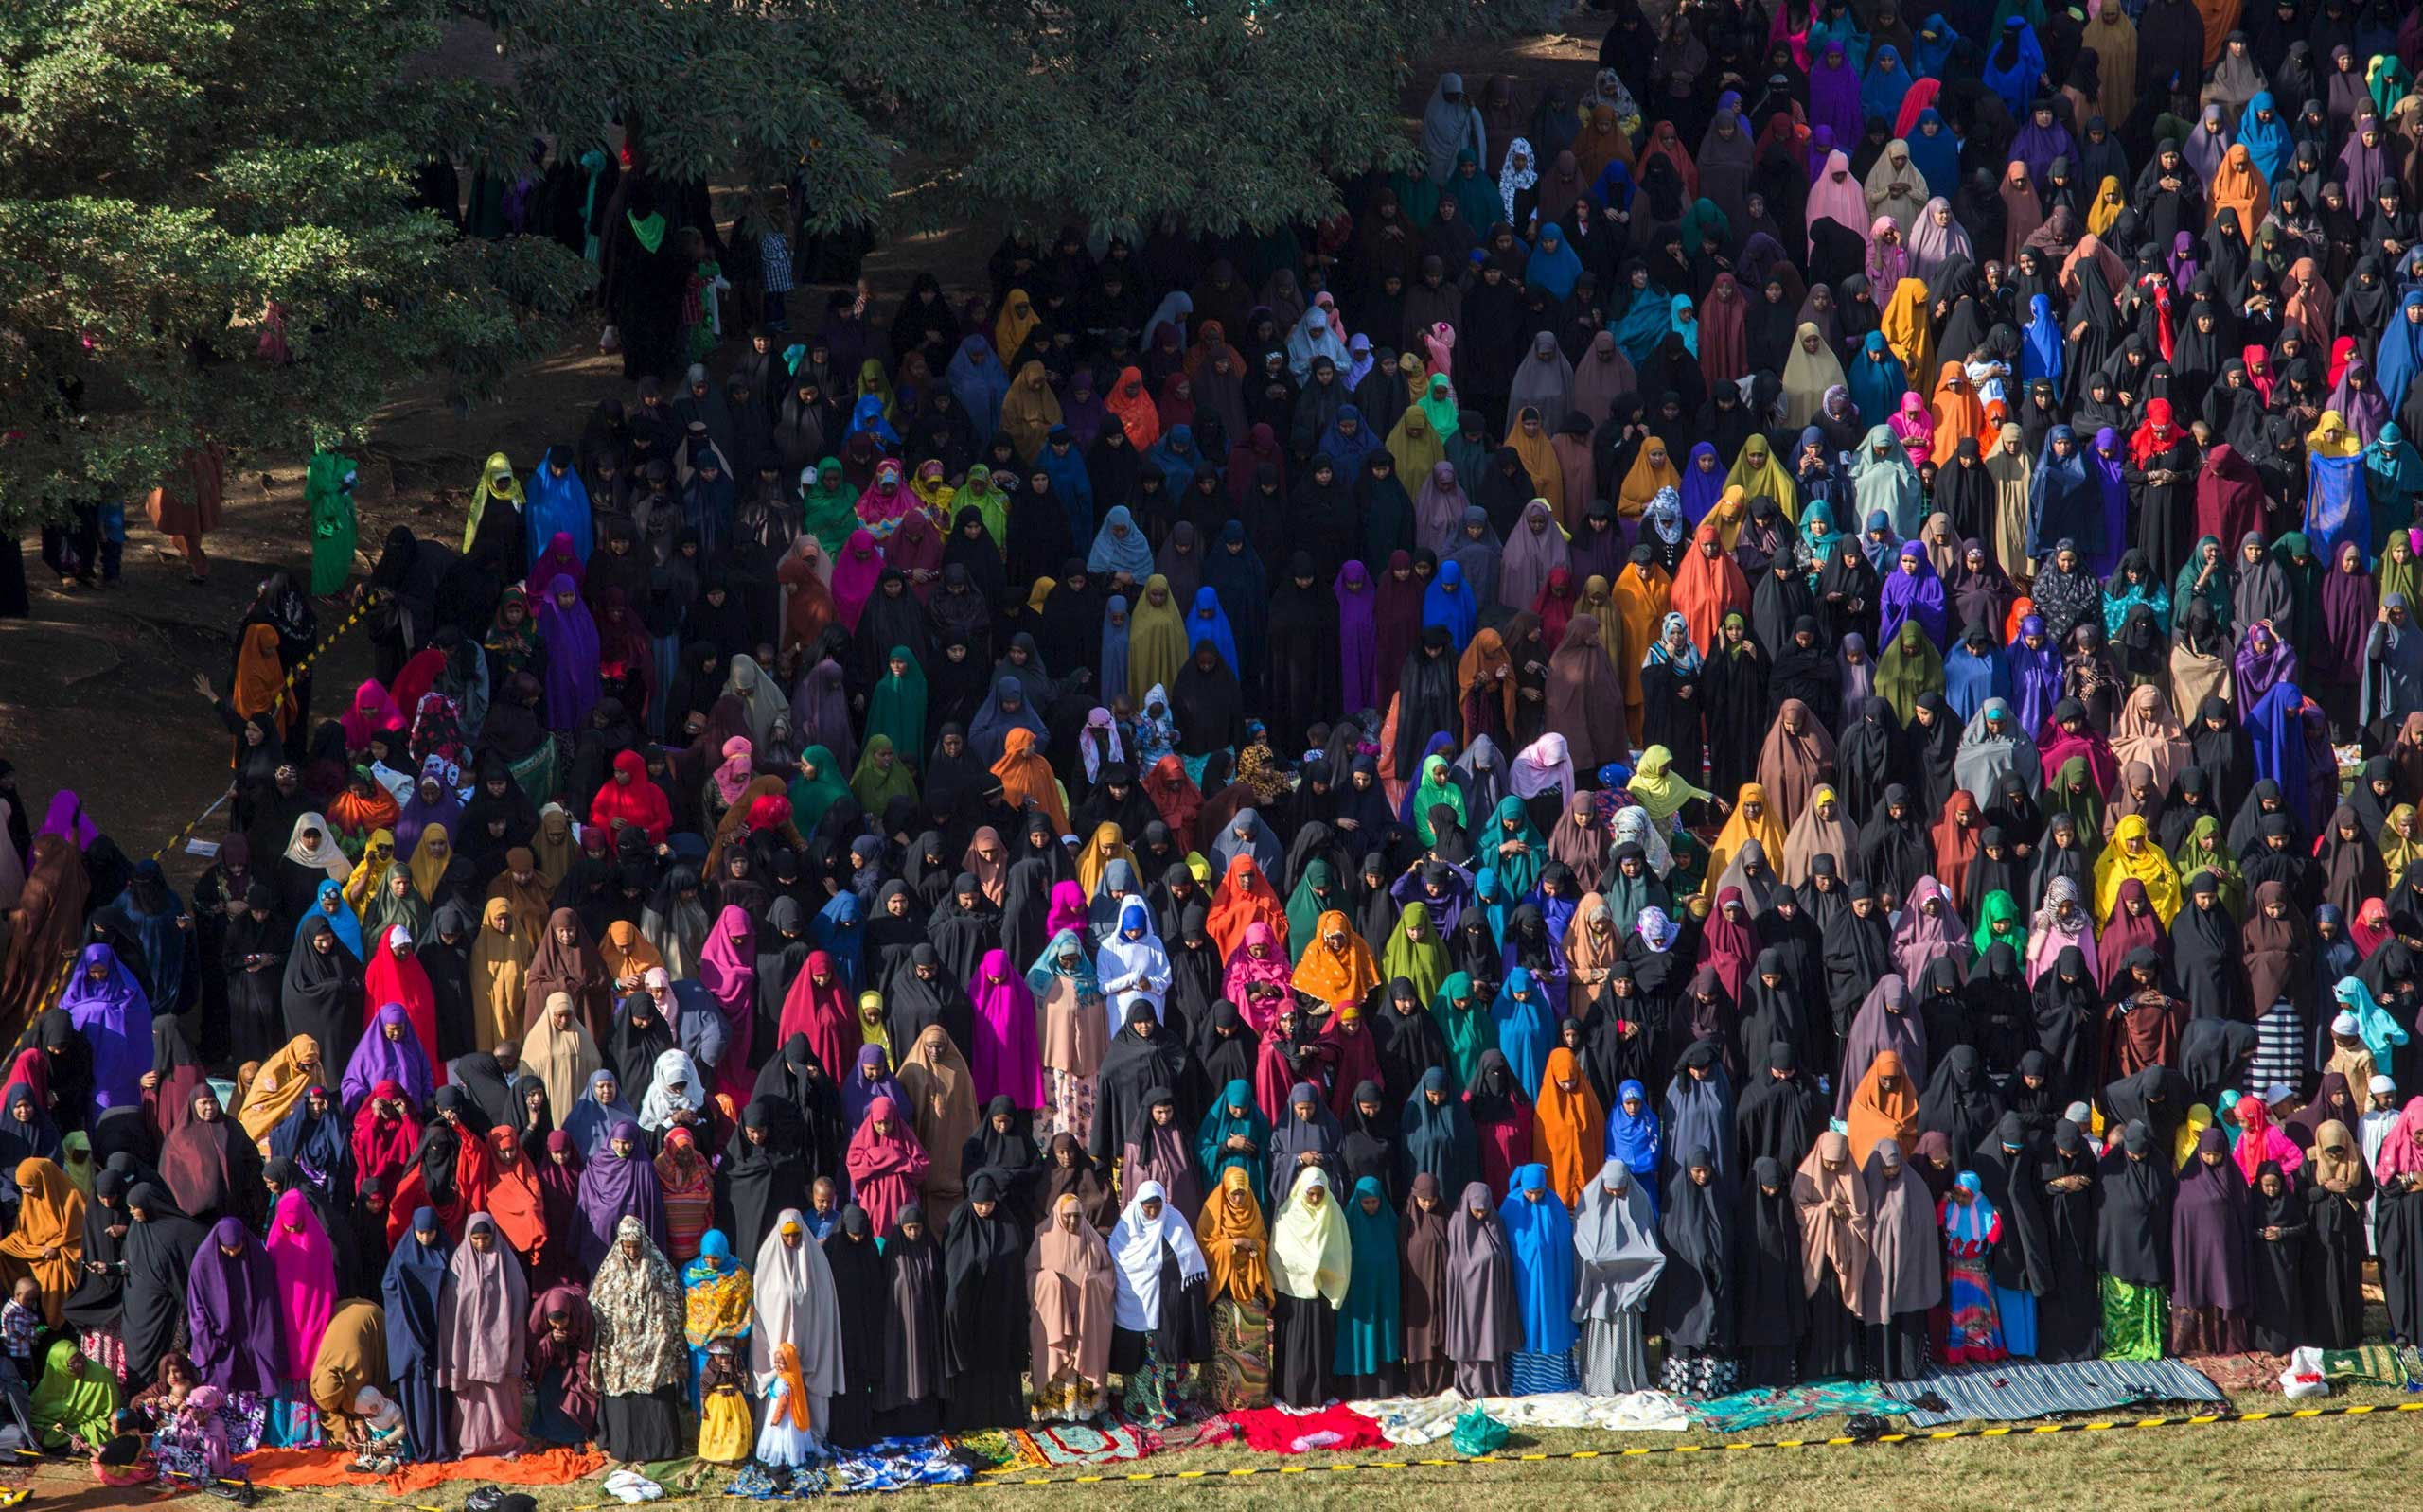 Muslim faithful take part in morning prayers to celebrate the first day of the Muslim holiday of Eid-al-Fitr, marking the end of the holy month of Ramadan, at the Eastleigh High School in Eastleigh, a suburb in Nairobi predominantly inhabited by Somali immigrants within Kenya's capital Nairobi, on July 17, 2015.